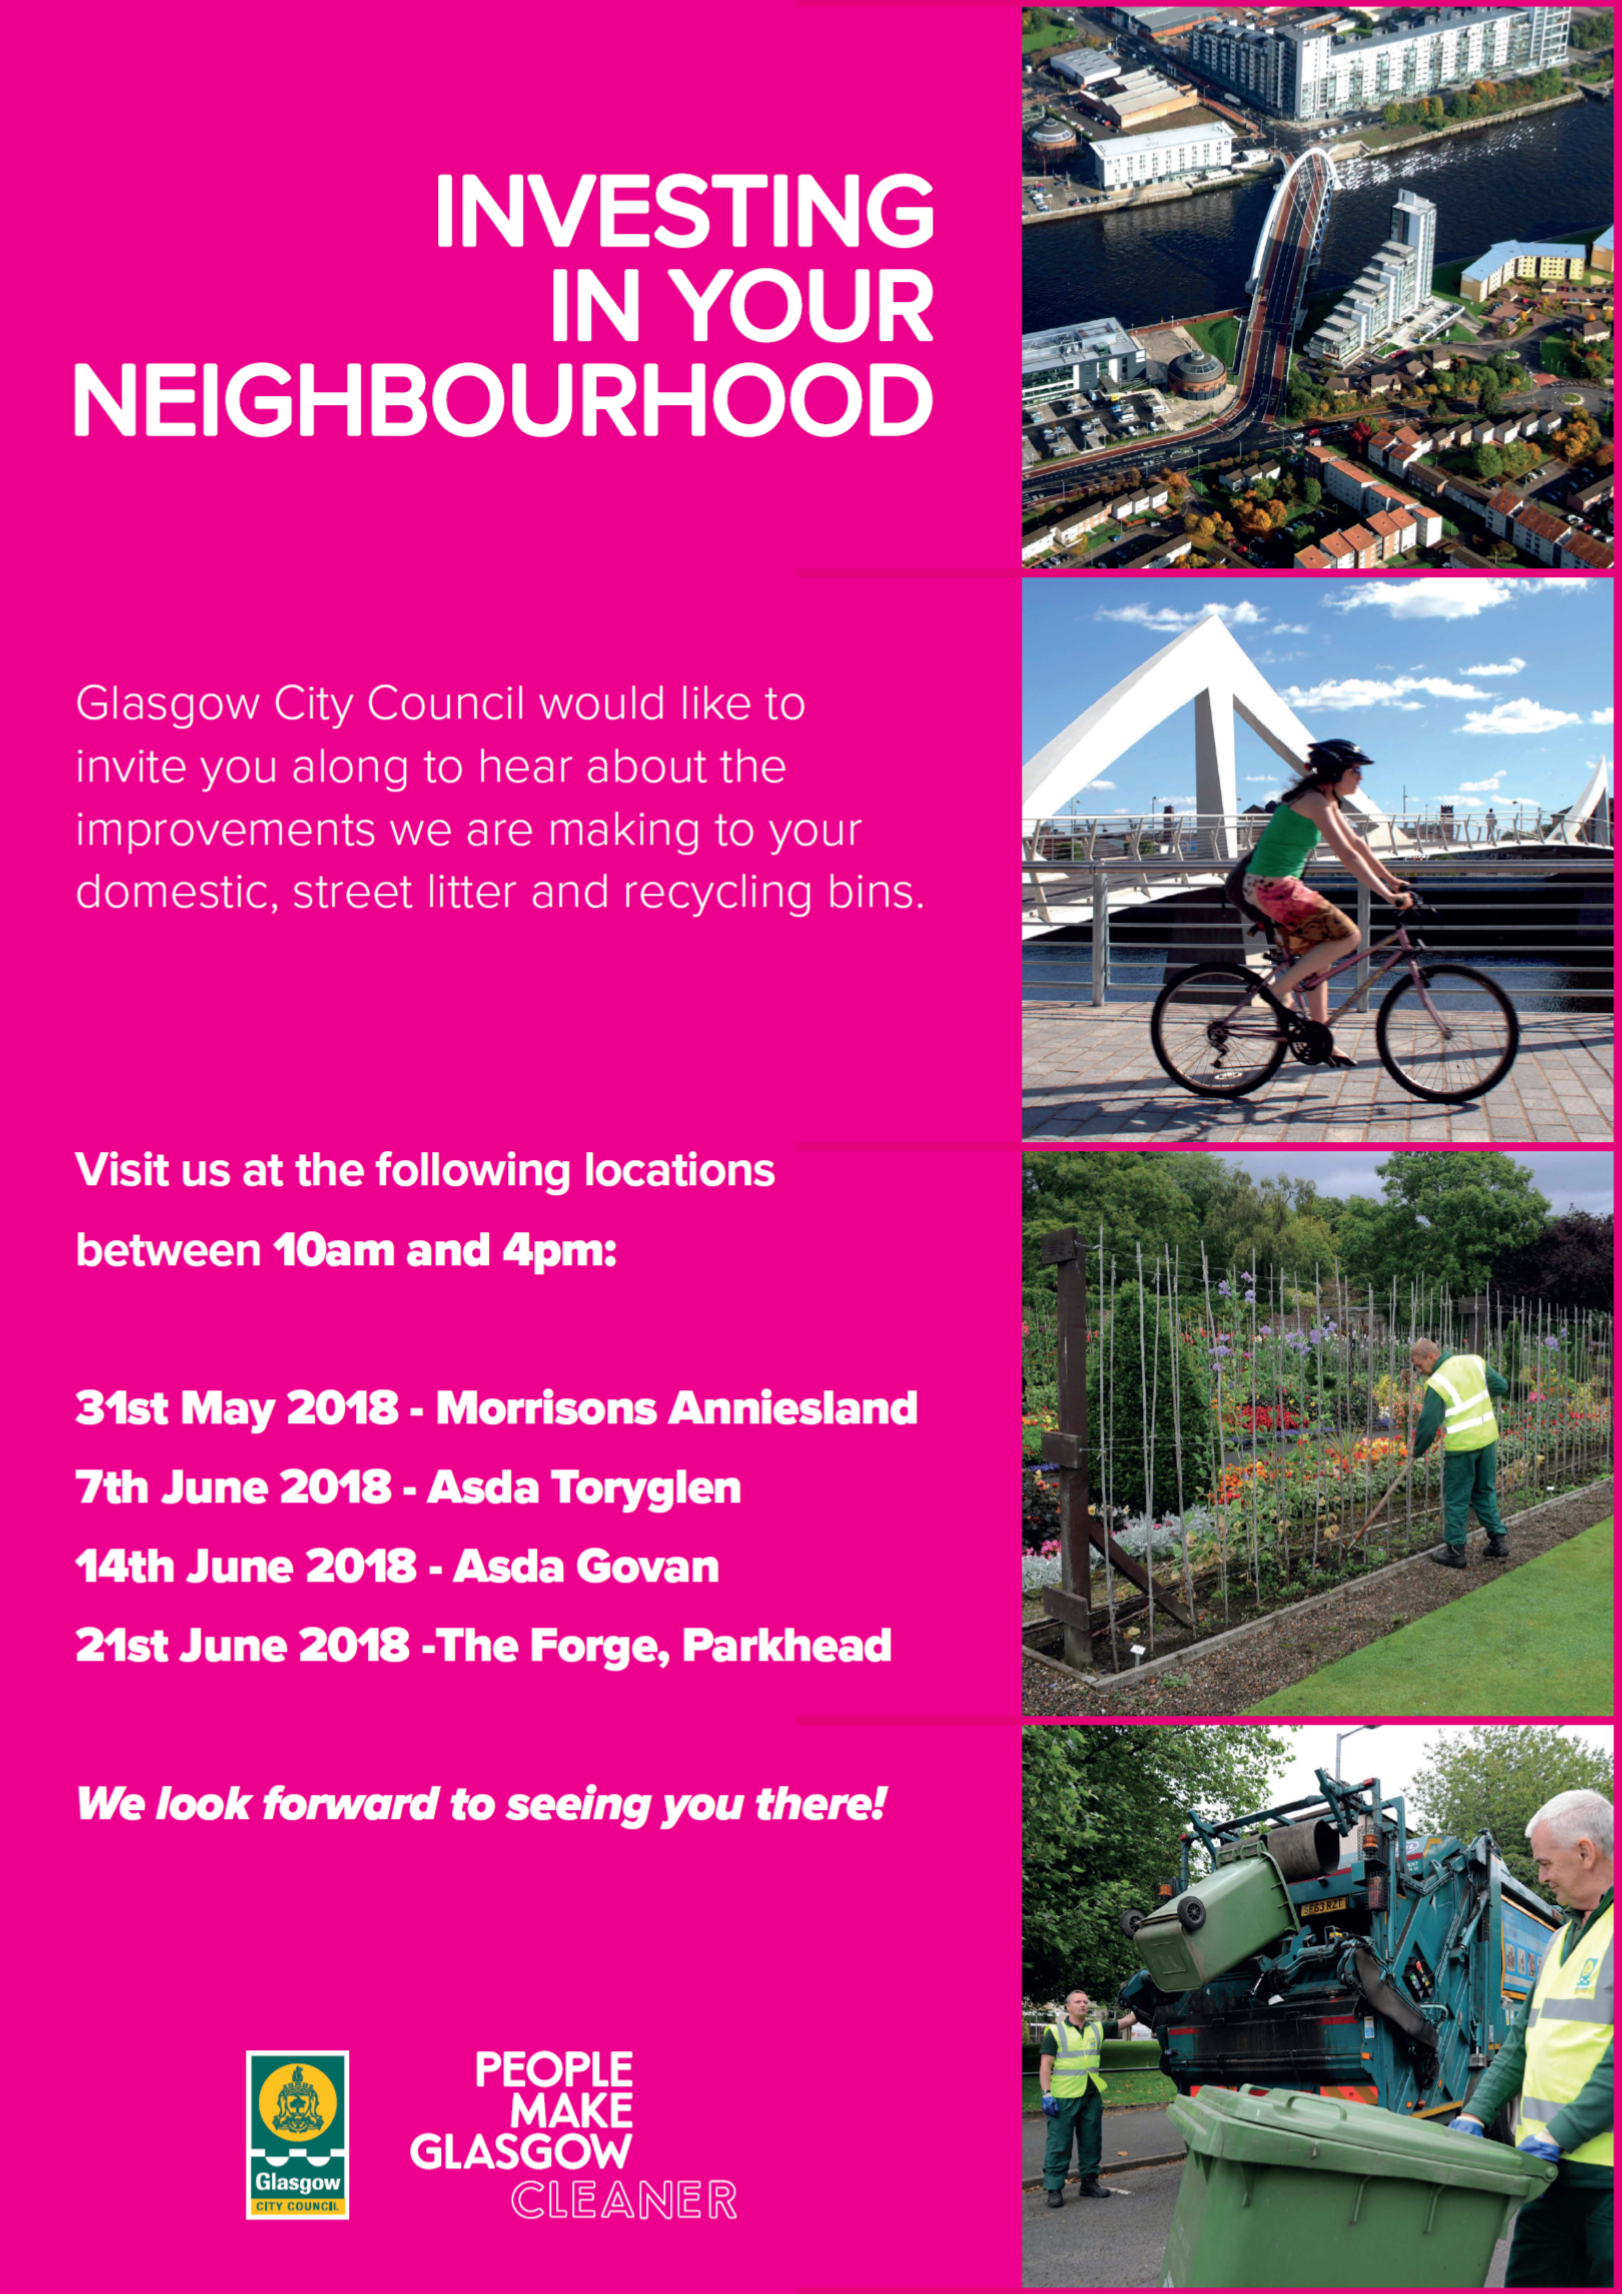 GCC Investing In Your Neighbourhood Poster